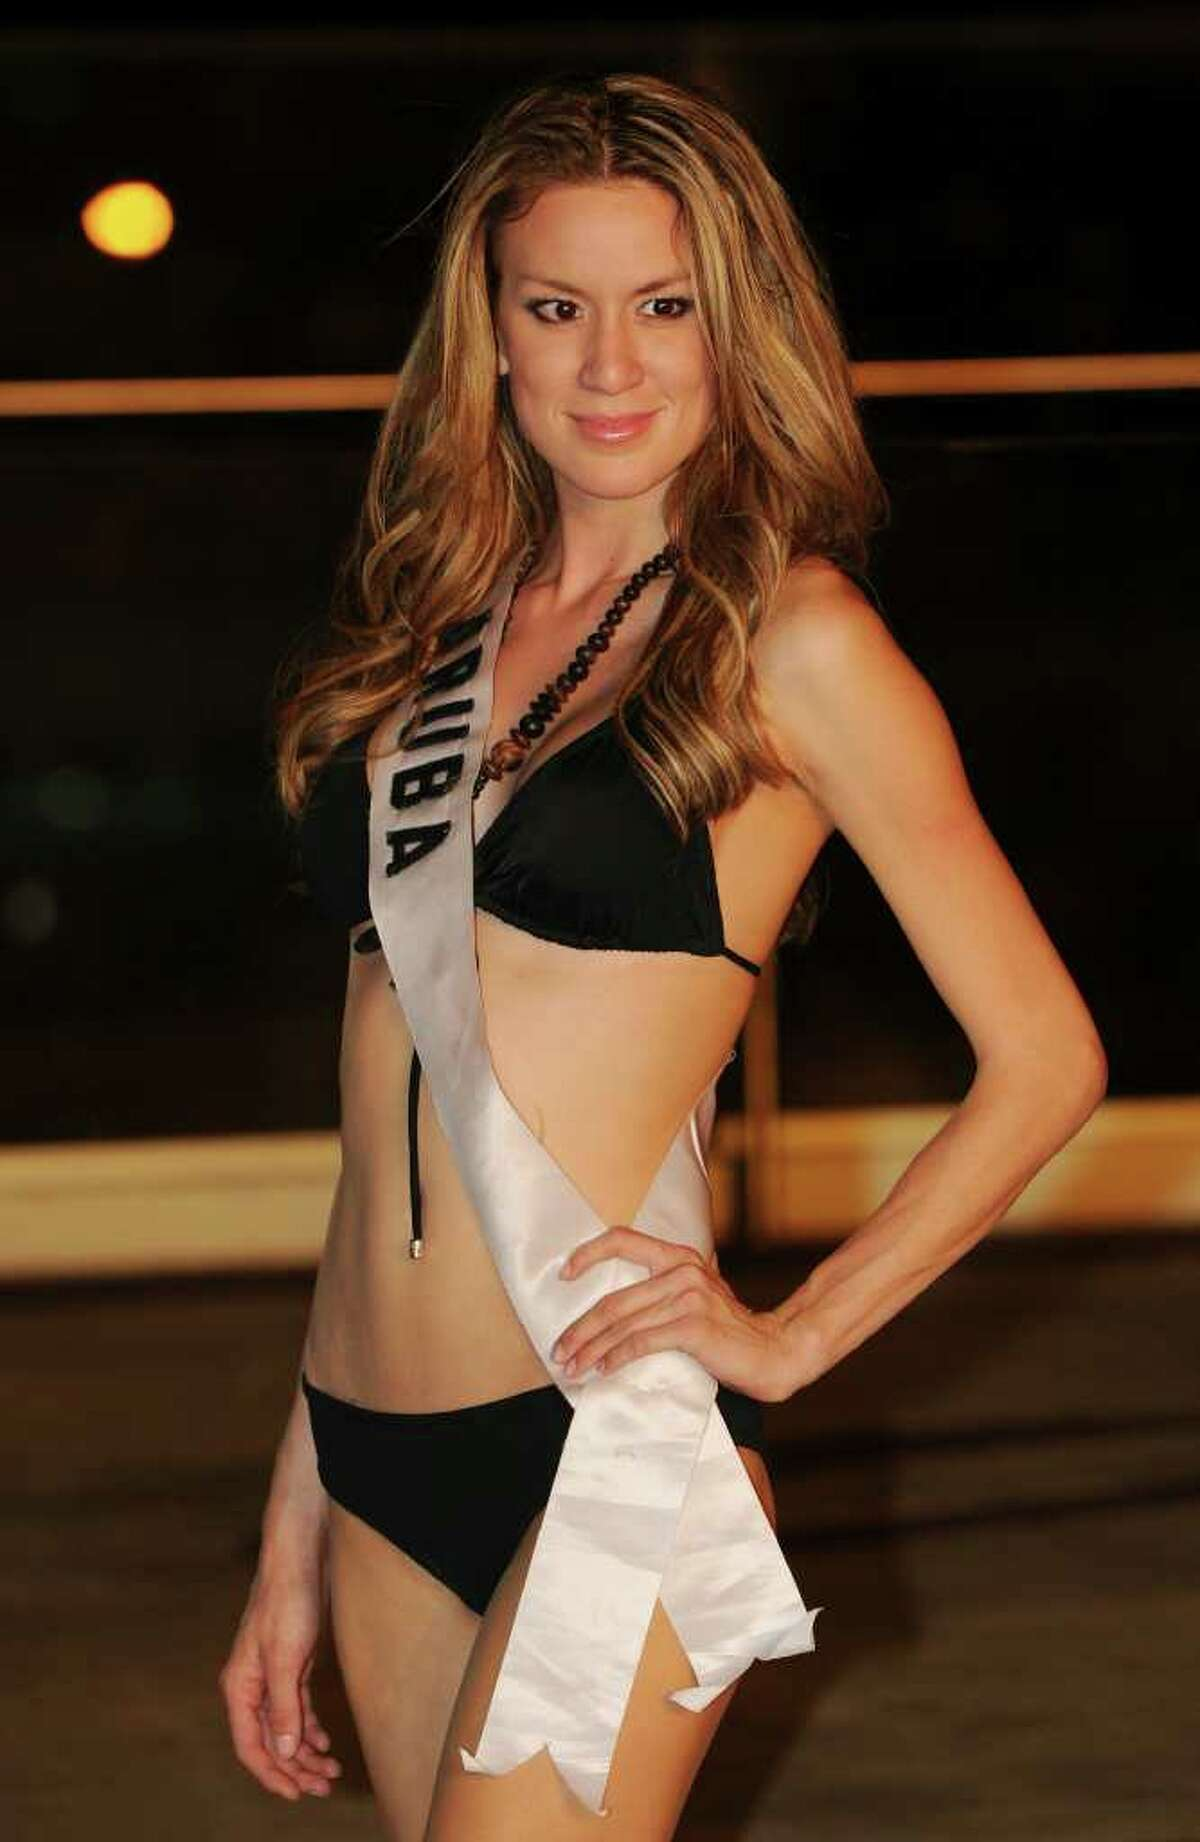 Miss Aruba Priscilla Lee poses for photographers during the Miss Universe 2010 Contestant Swimsuit Event at the Mandalay Bay Hotel in Las Vegas on August 21, 2010. The finals of the Miss Universe 2010 competition that will be held at the hotel on August 23. AFP PHOTO/Mark RALSTON